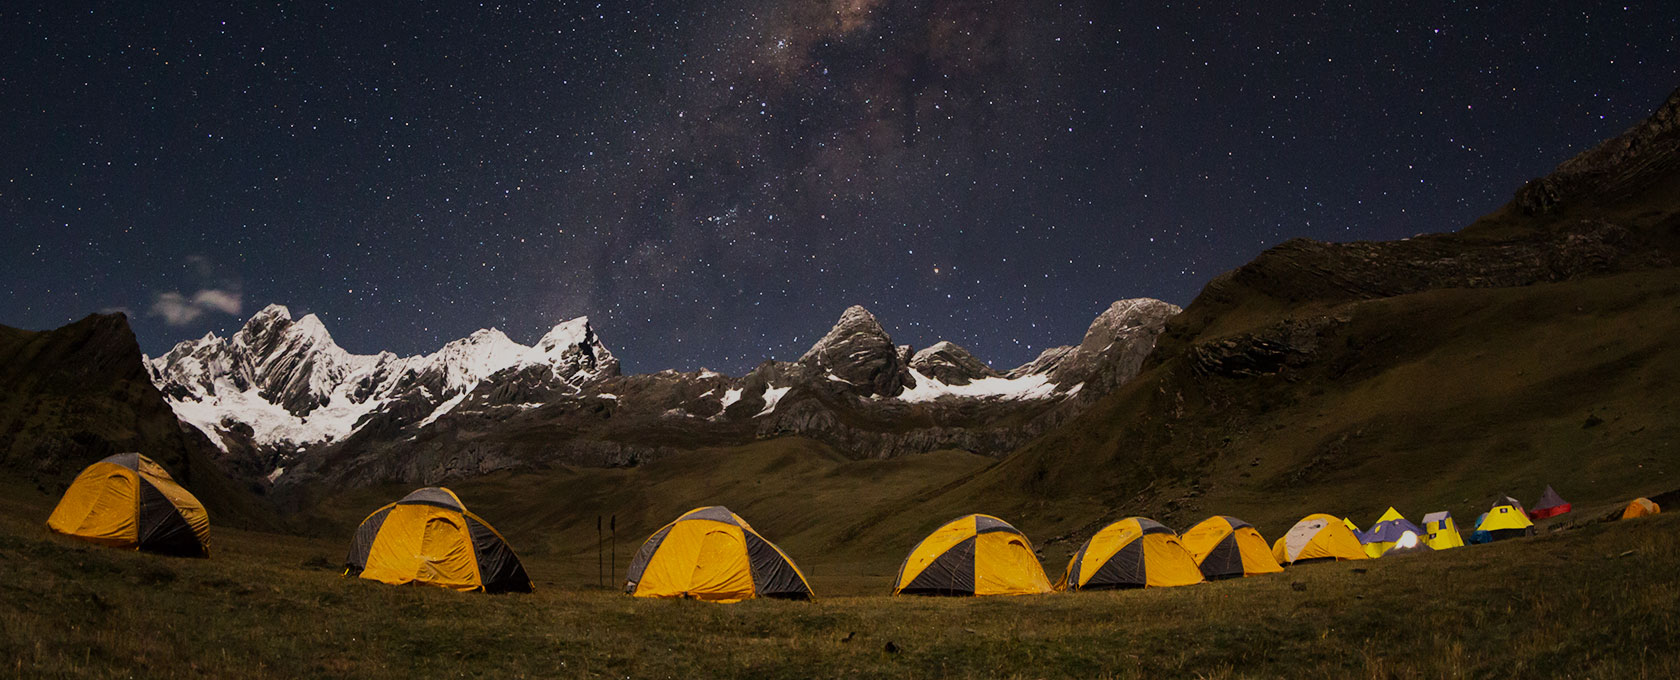 Magic Landscape Cordillera Huayhuash Adventure on two wheels - Circuit Yerupaja & Siula Grande, Peru